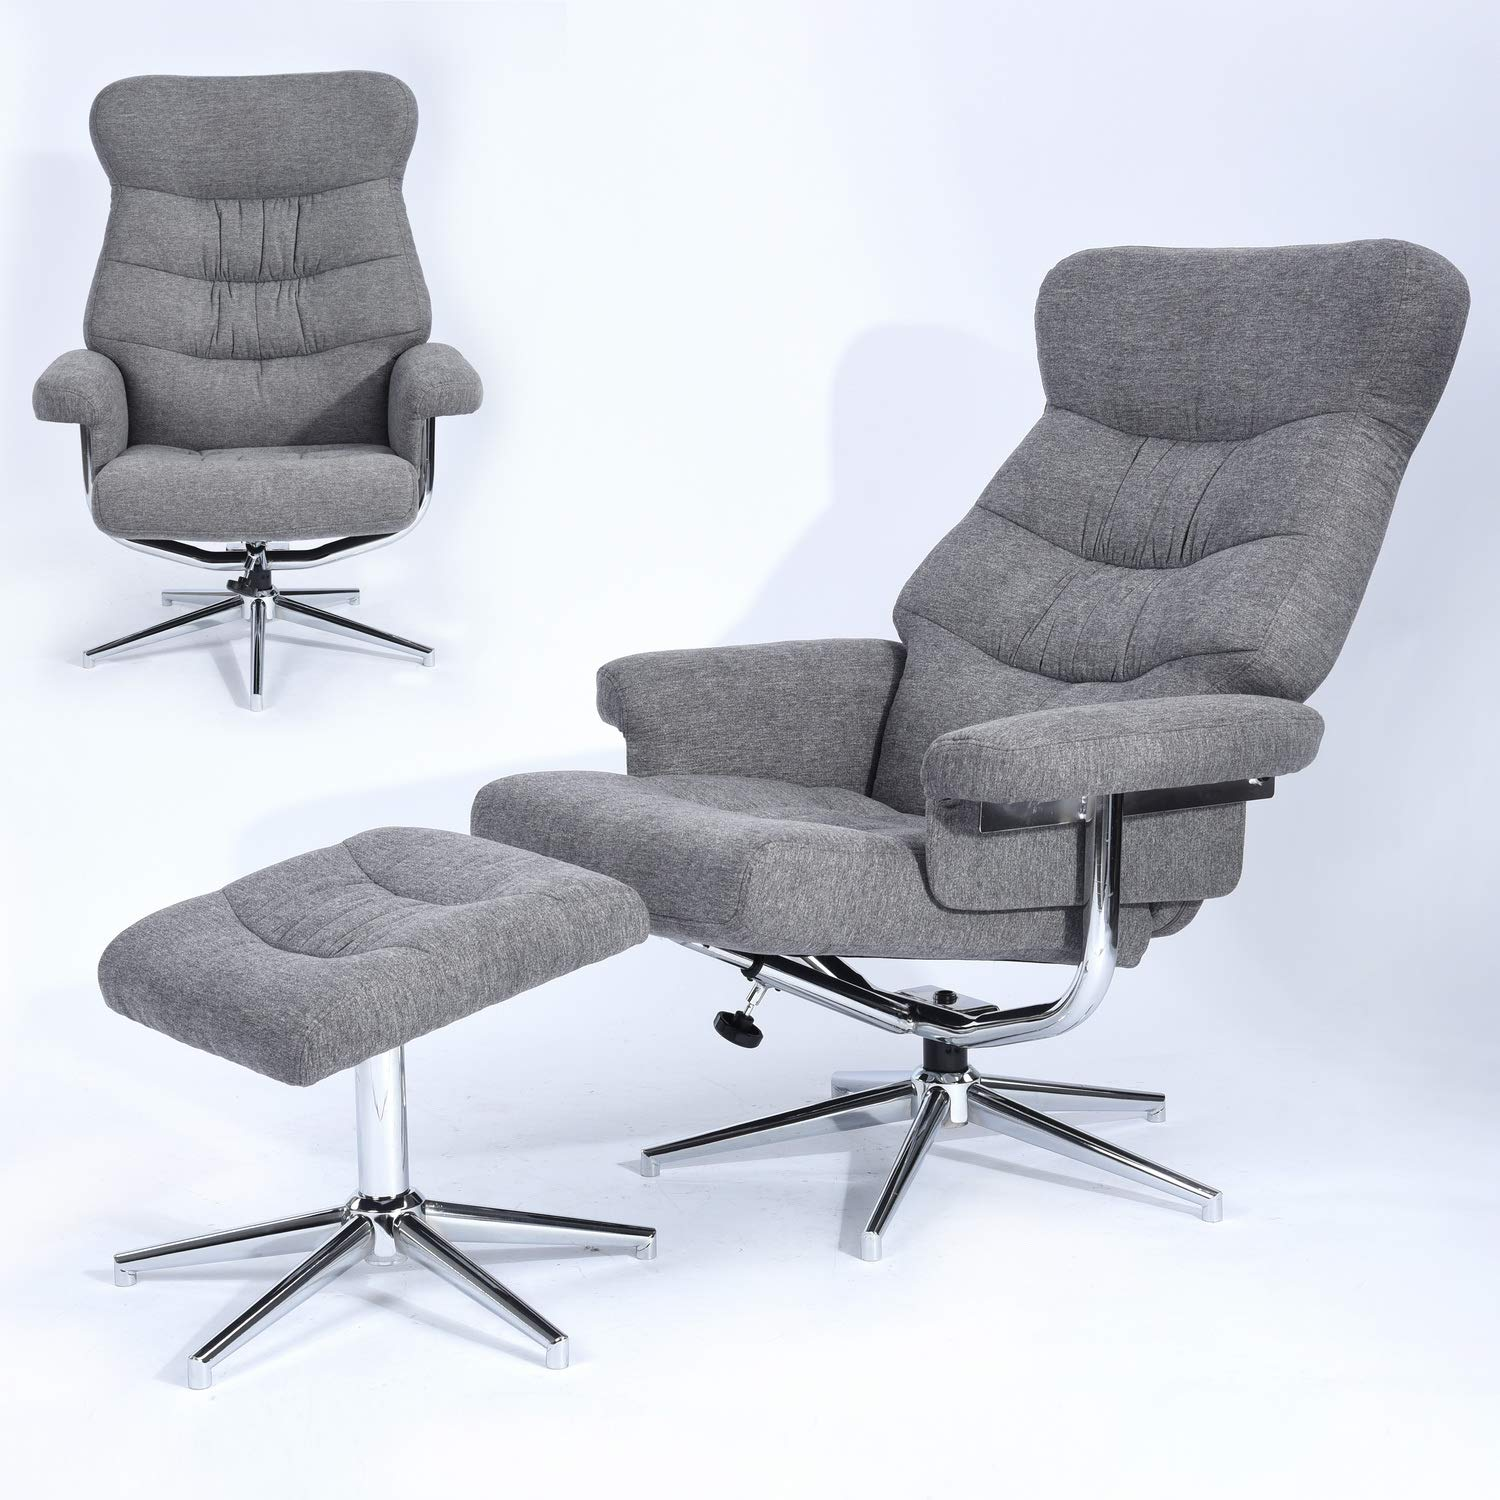 Homy Casa Swivel Recliner and Ottoman Chair Fabric Lounge Armchair Set Leisure Seat with Foot Stool and Chrome Finished Base,Grey